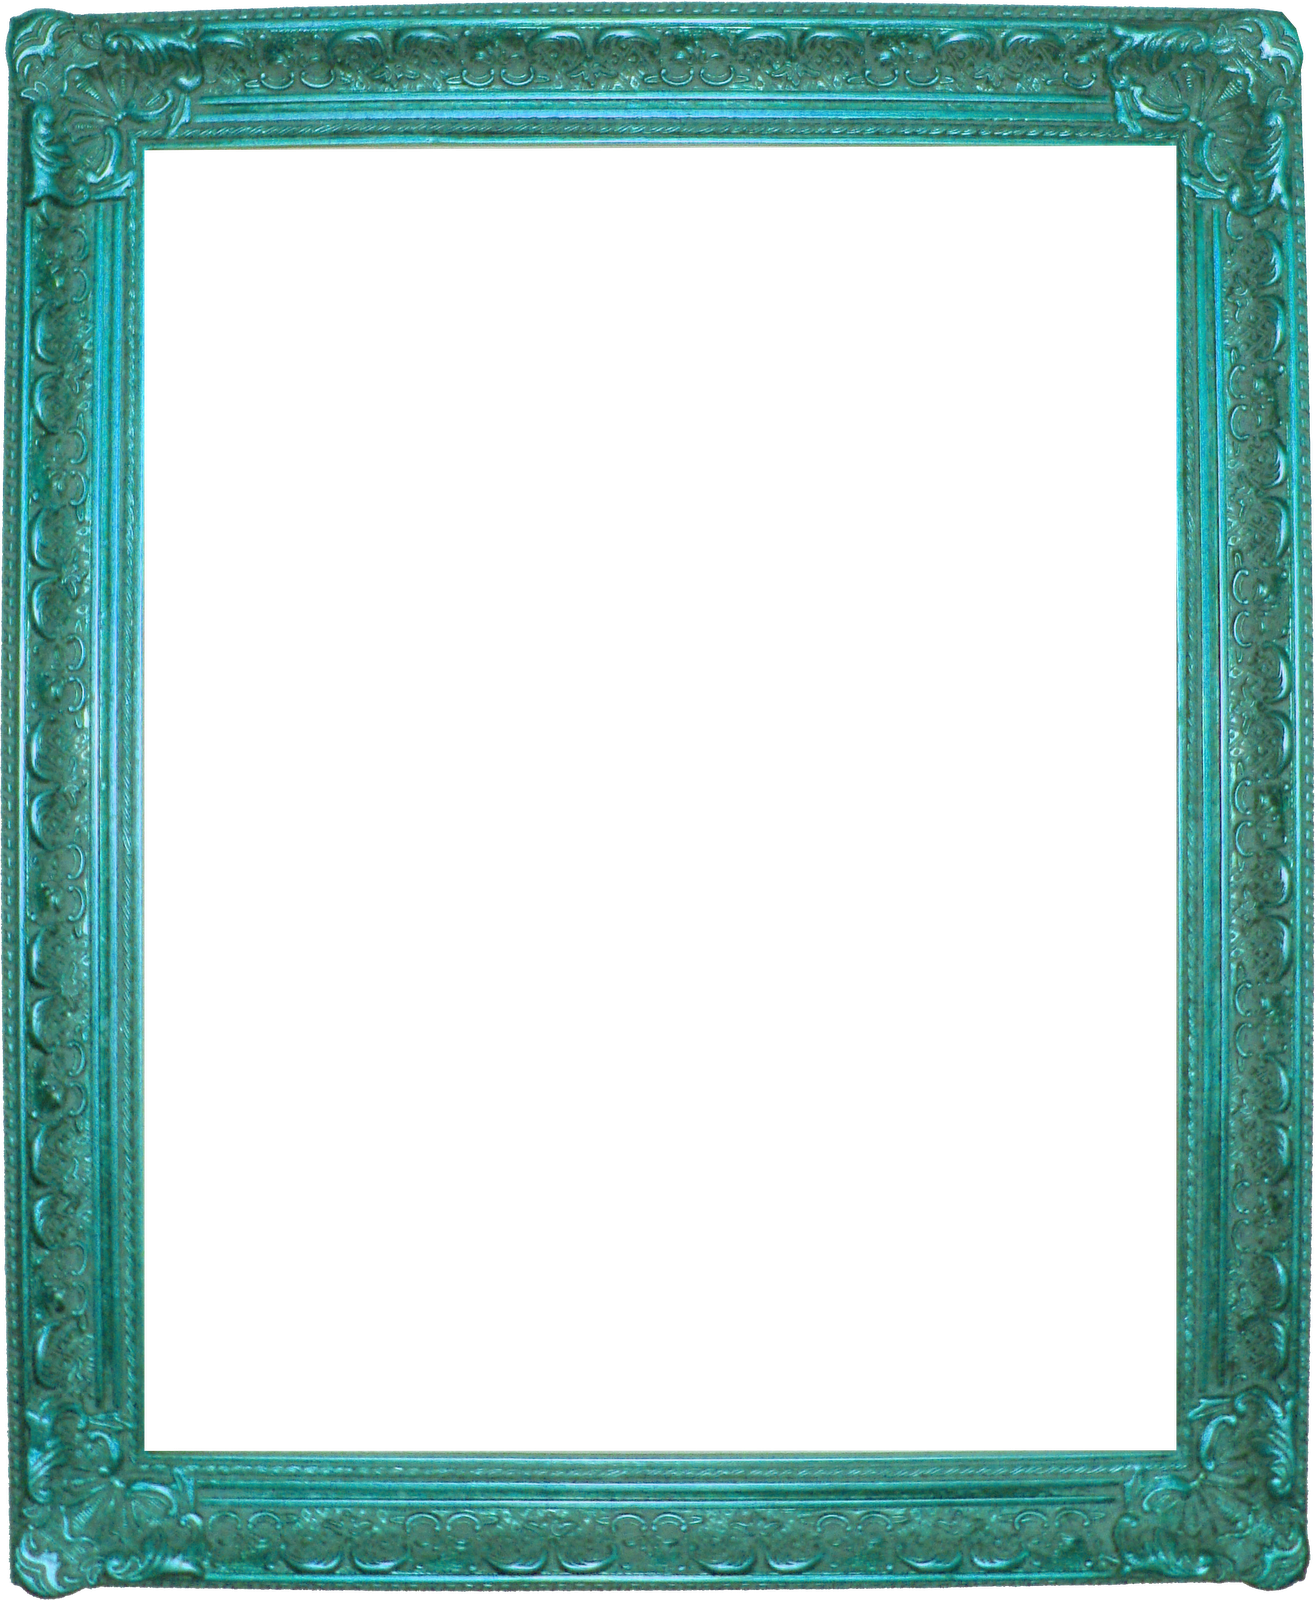 Antique Picture Frames Part - 43: FREE Digital Antique Photo Frames!